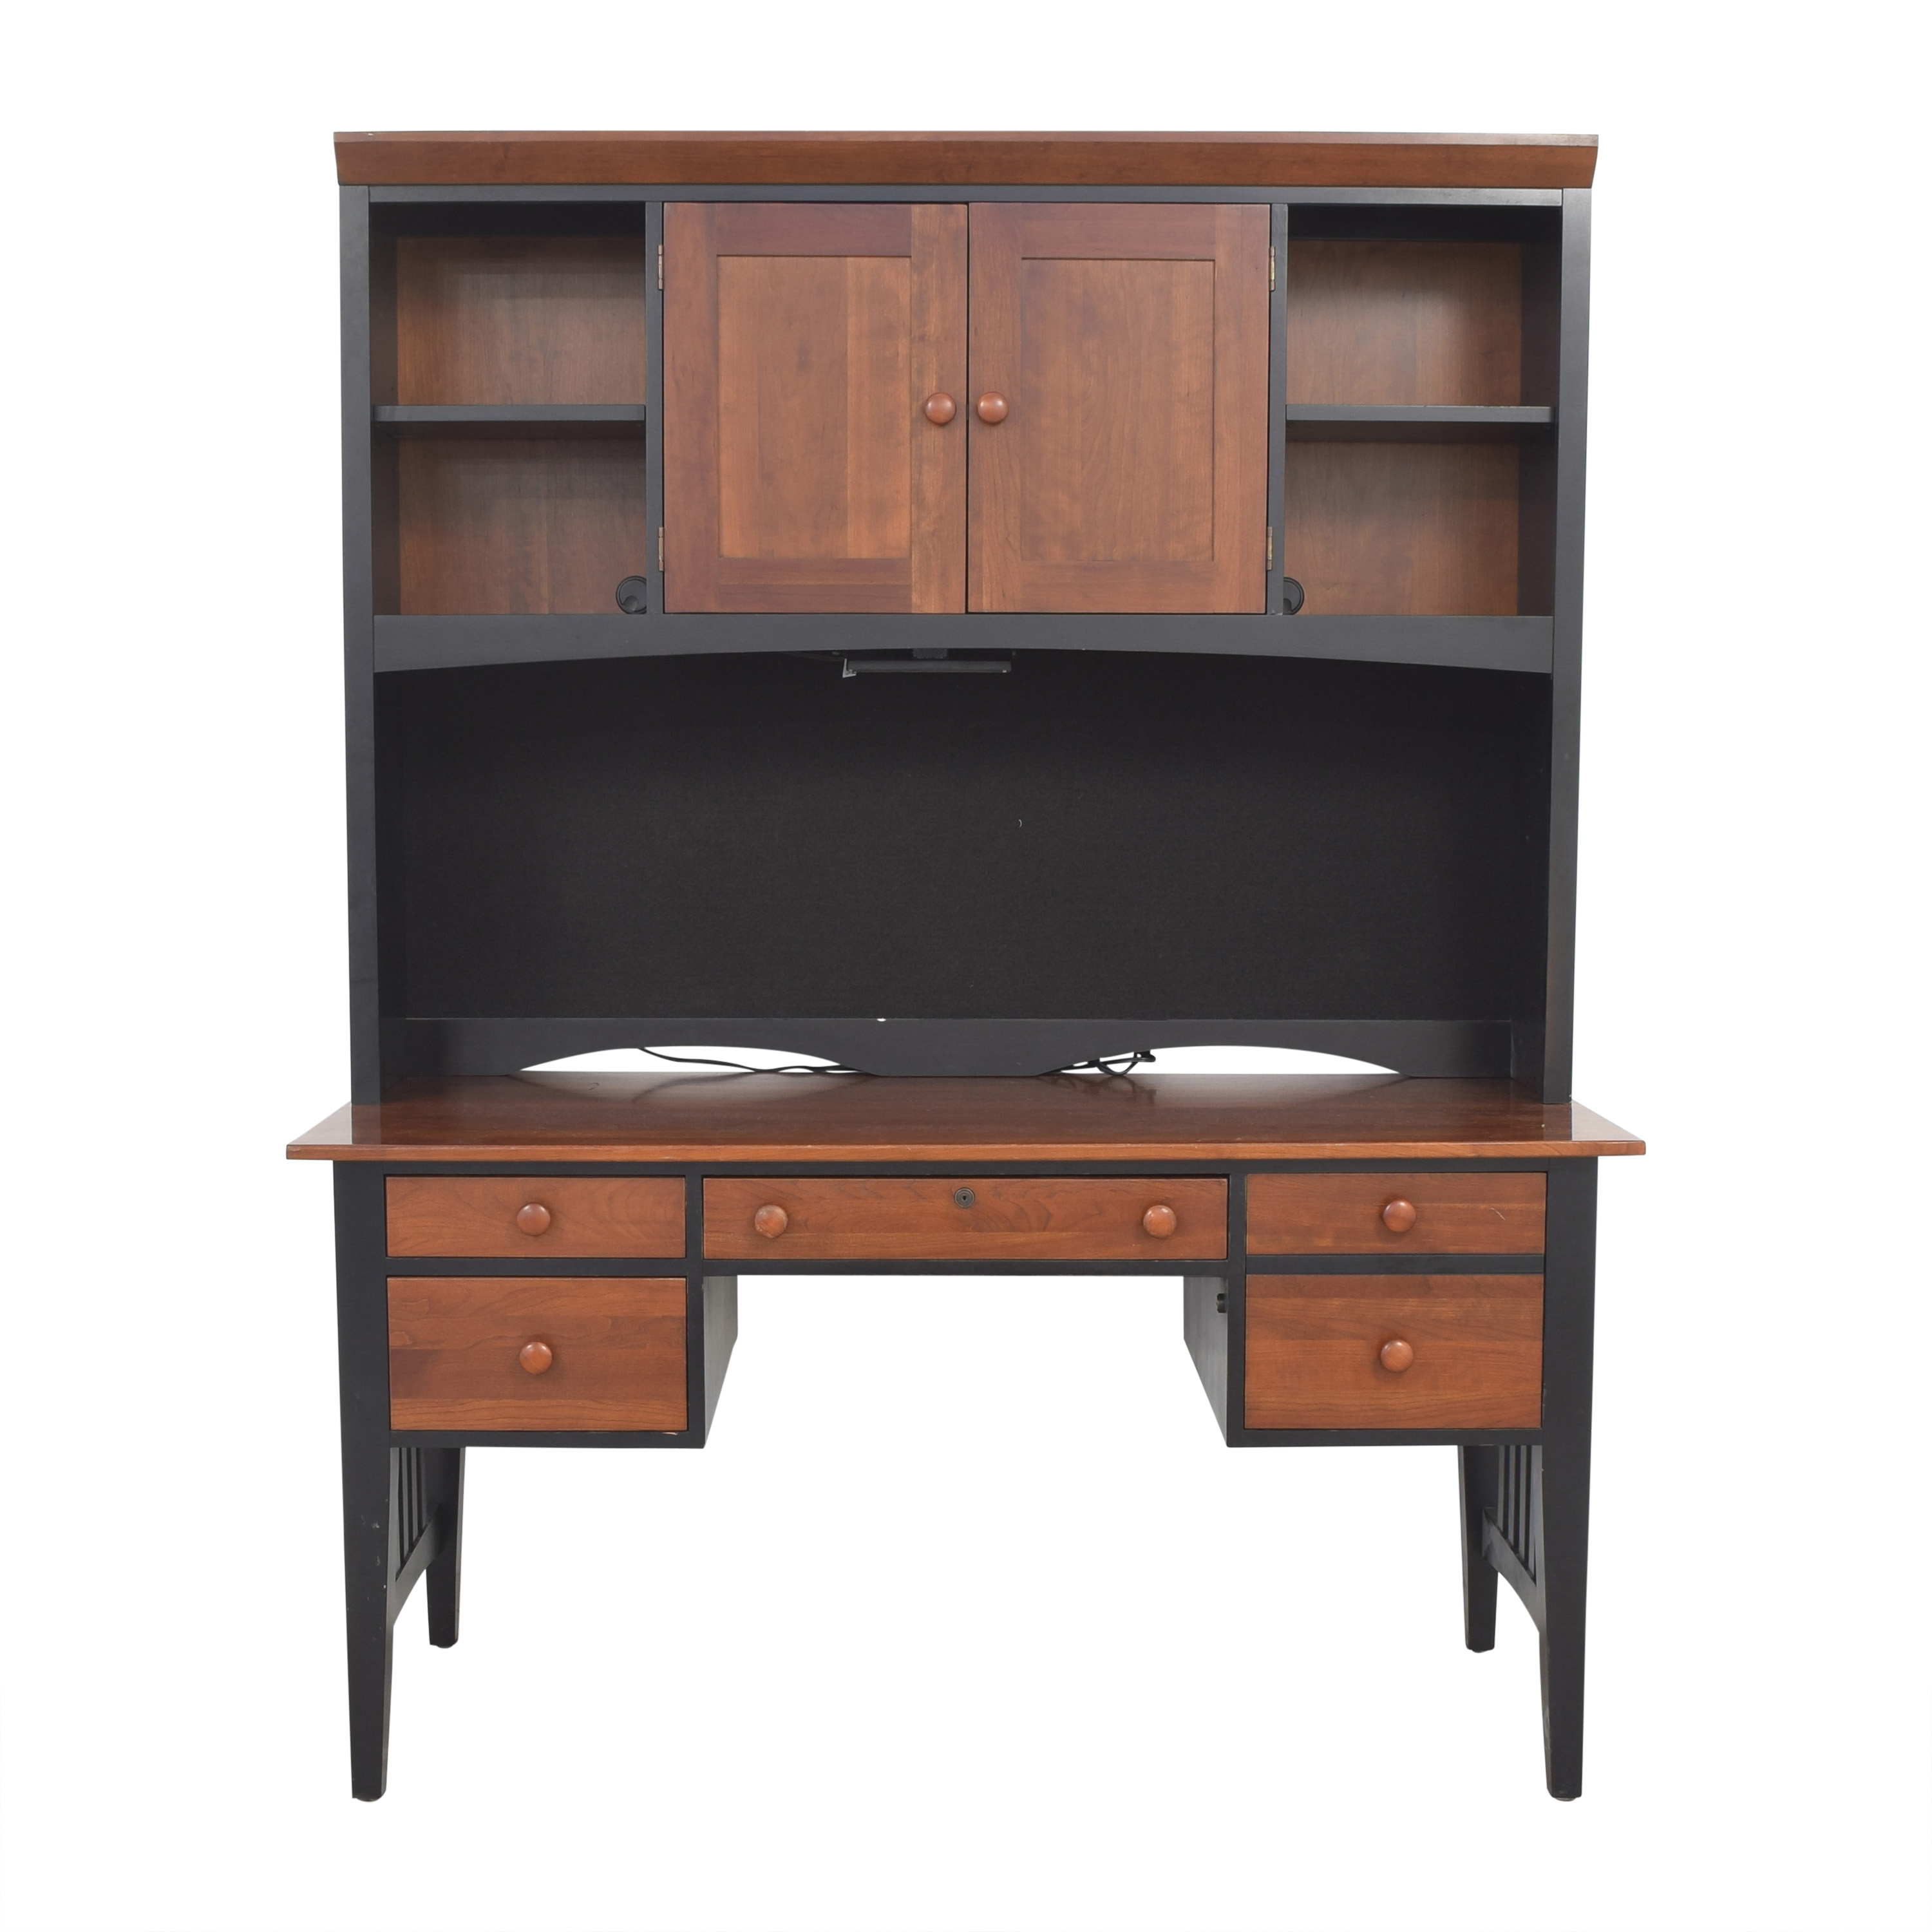 Ethan Allen American Impressions Desk with Hutch / Tables